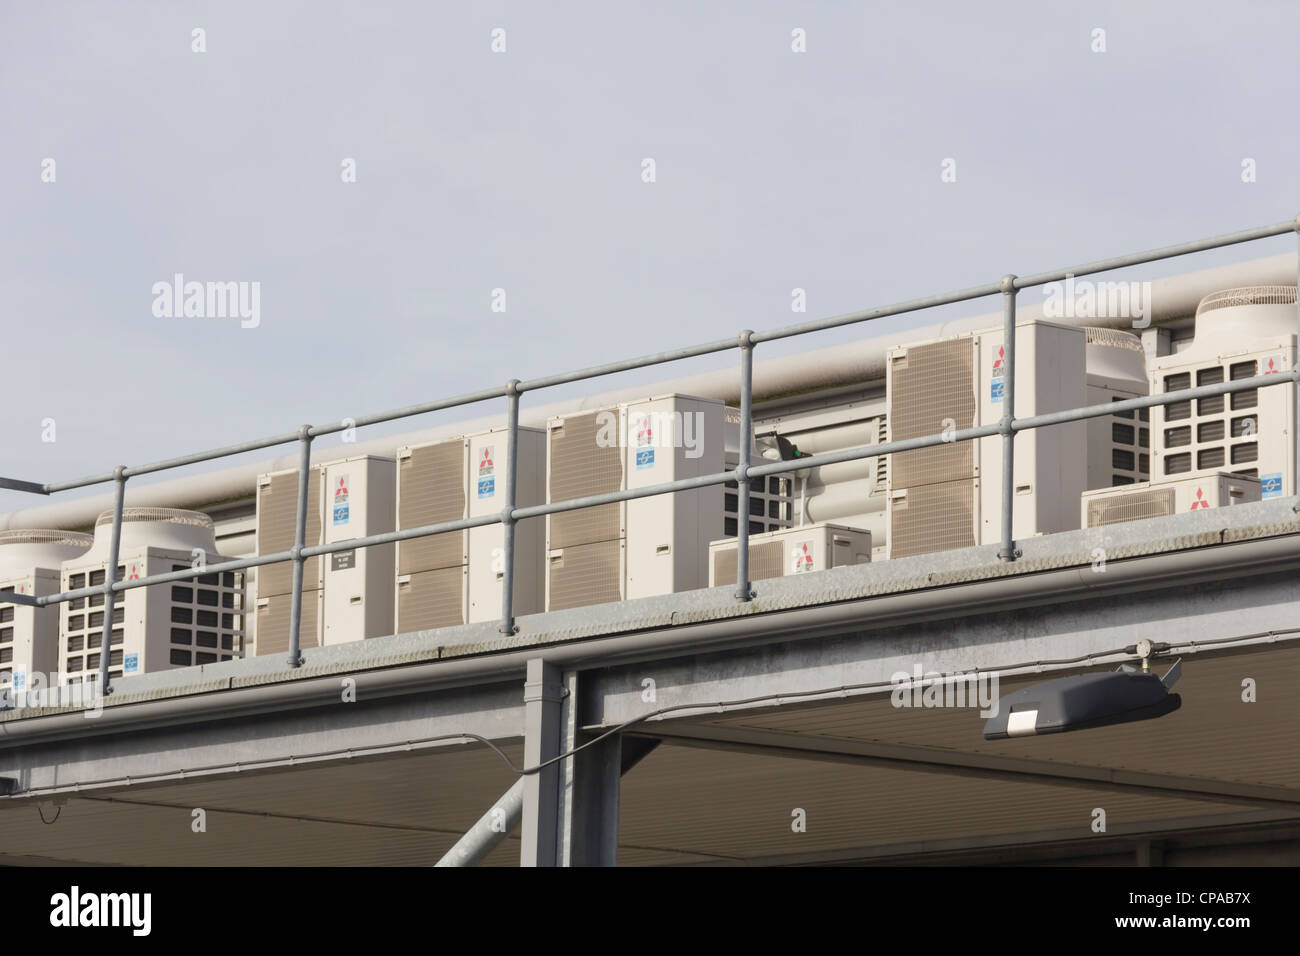 A Row Of Four Mitsubishi Air Conditioning Units On An Exterior Mezzanine  Floor Level Of An